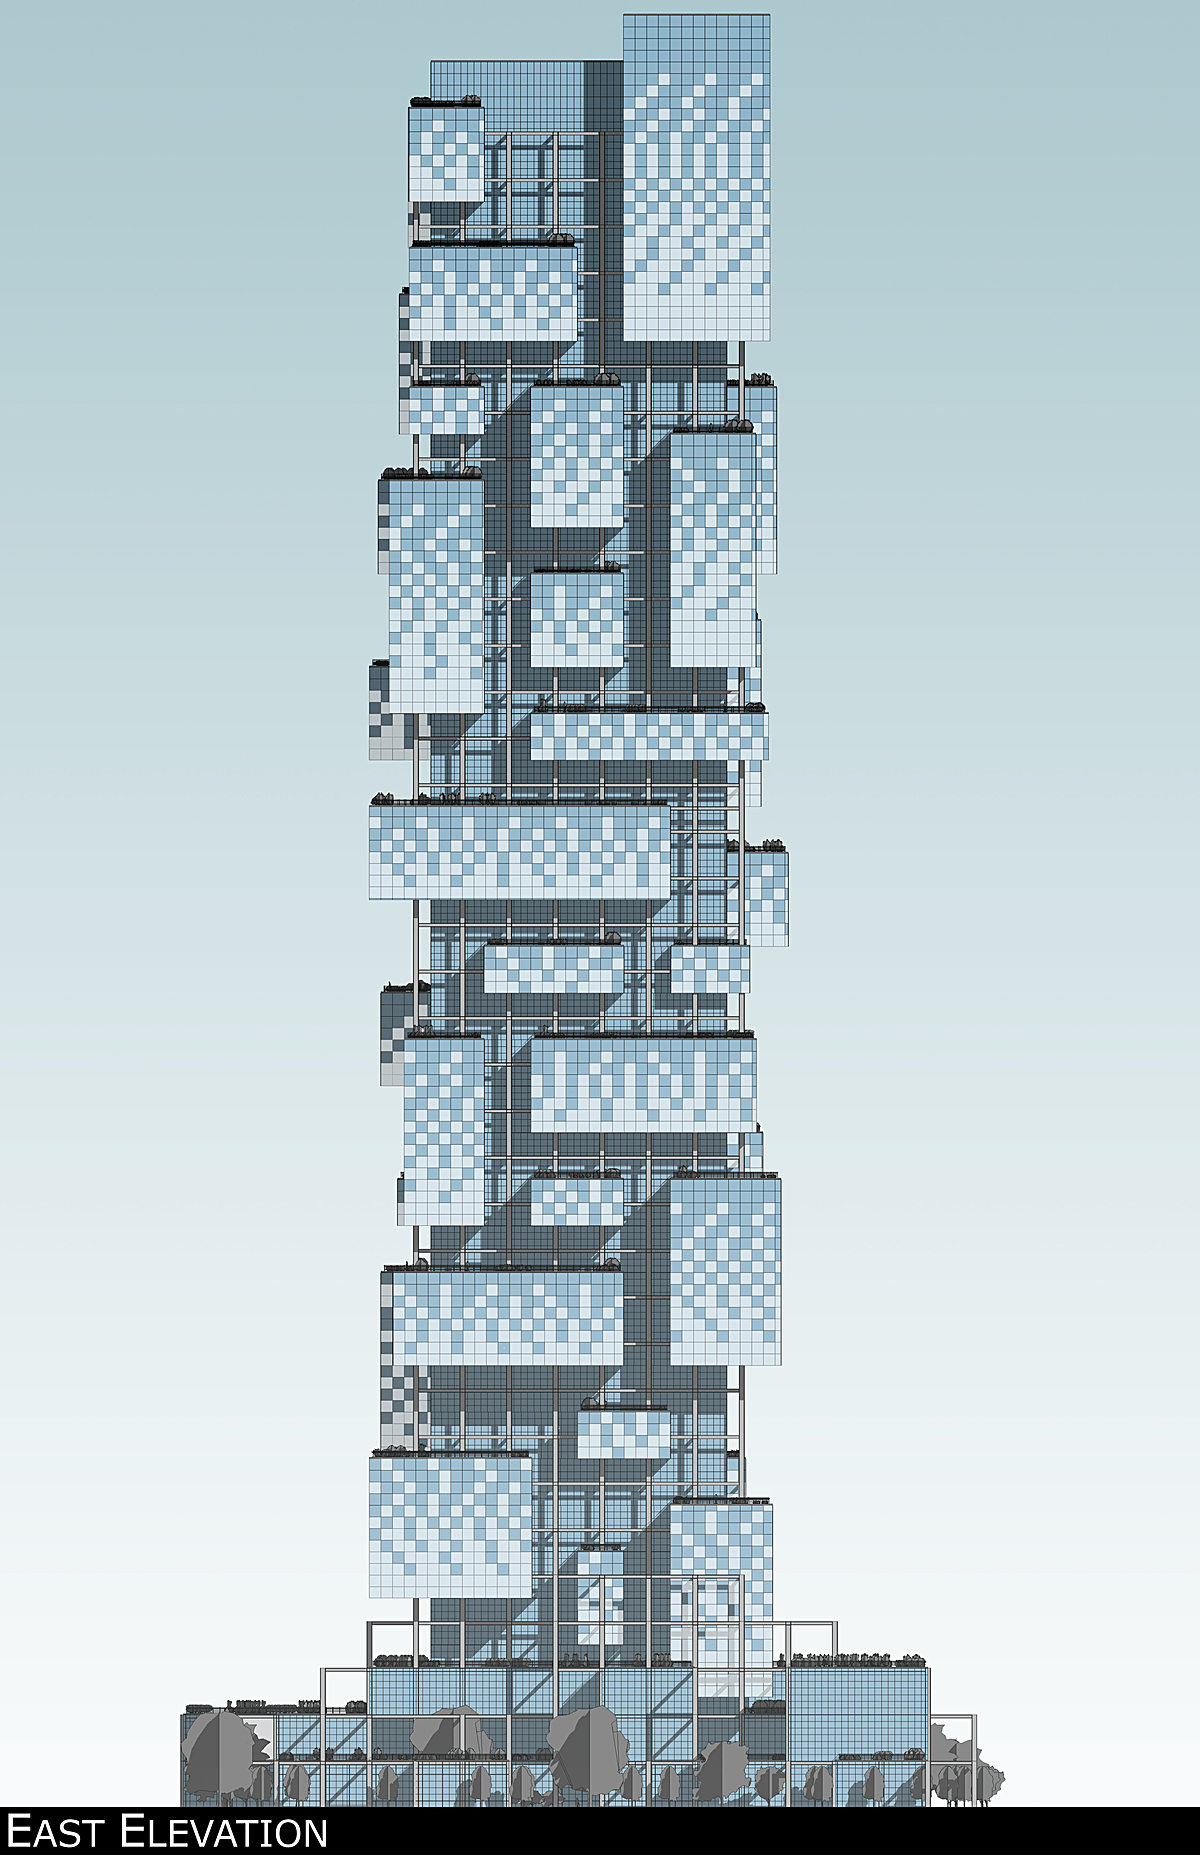 East elevation rendering showing alternative pattern with smart glass